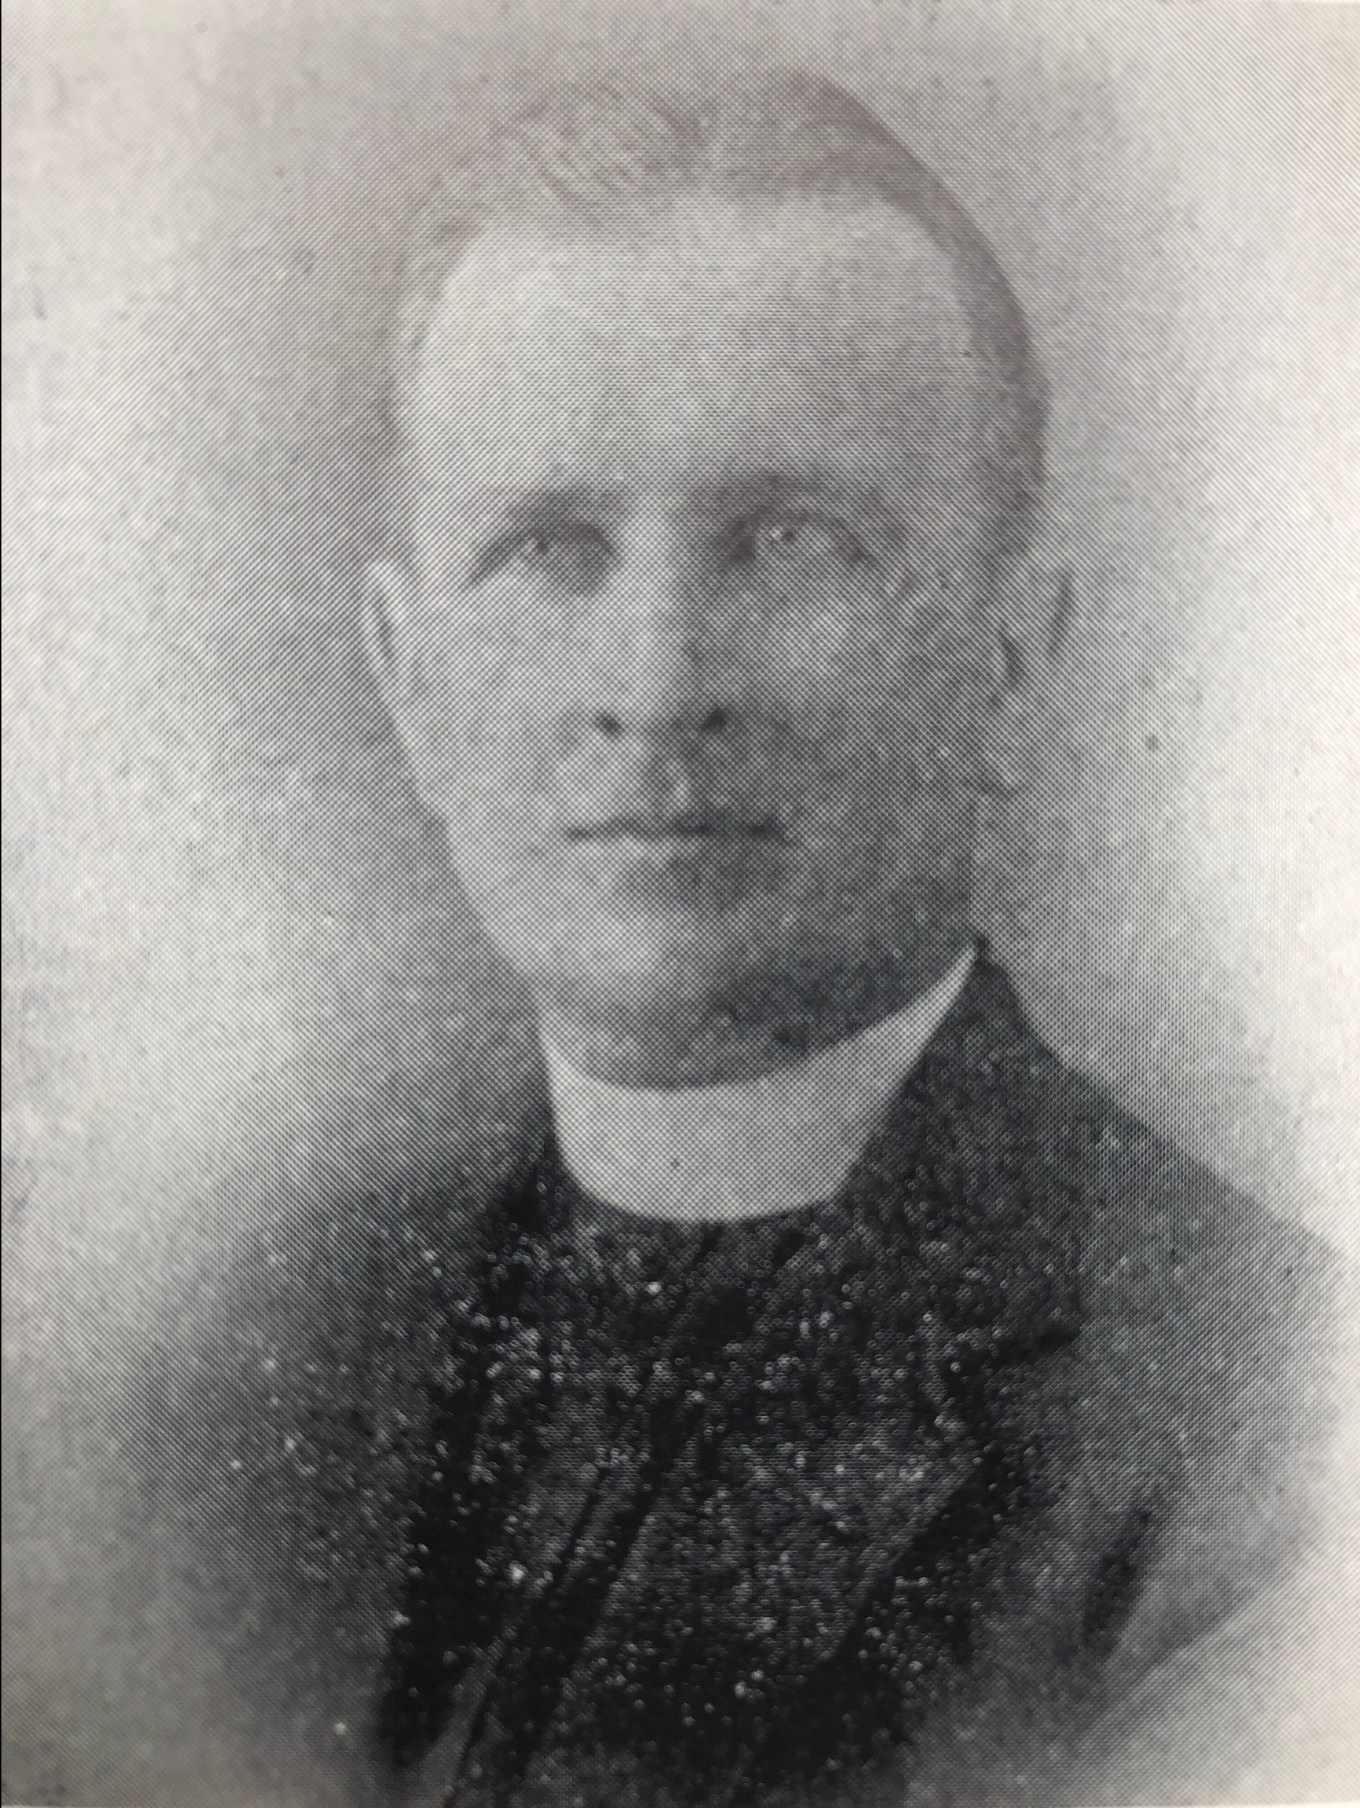 Rev. Laurence Herne, Society of Jesus (S.J.)